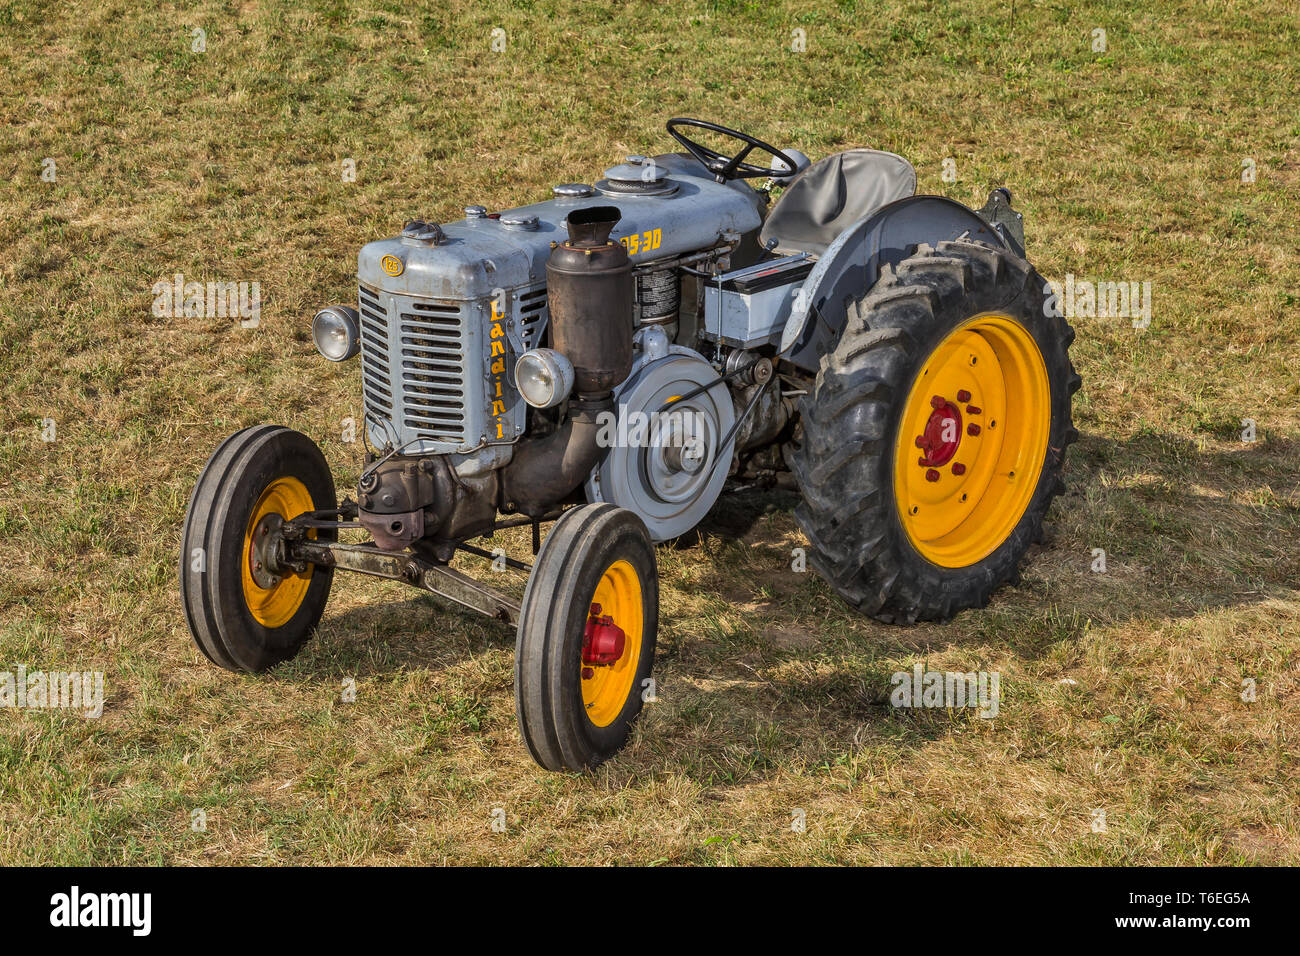 landini tractor stock photos  u0026 landini tractor stock images